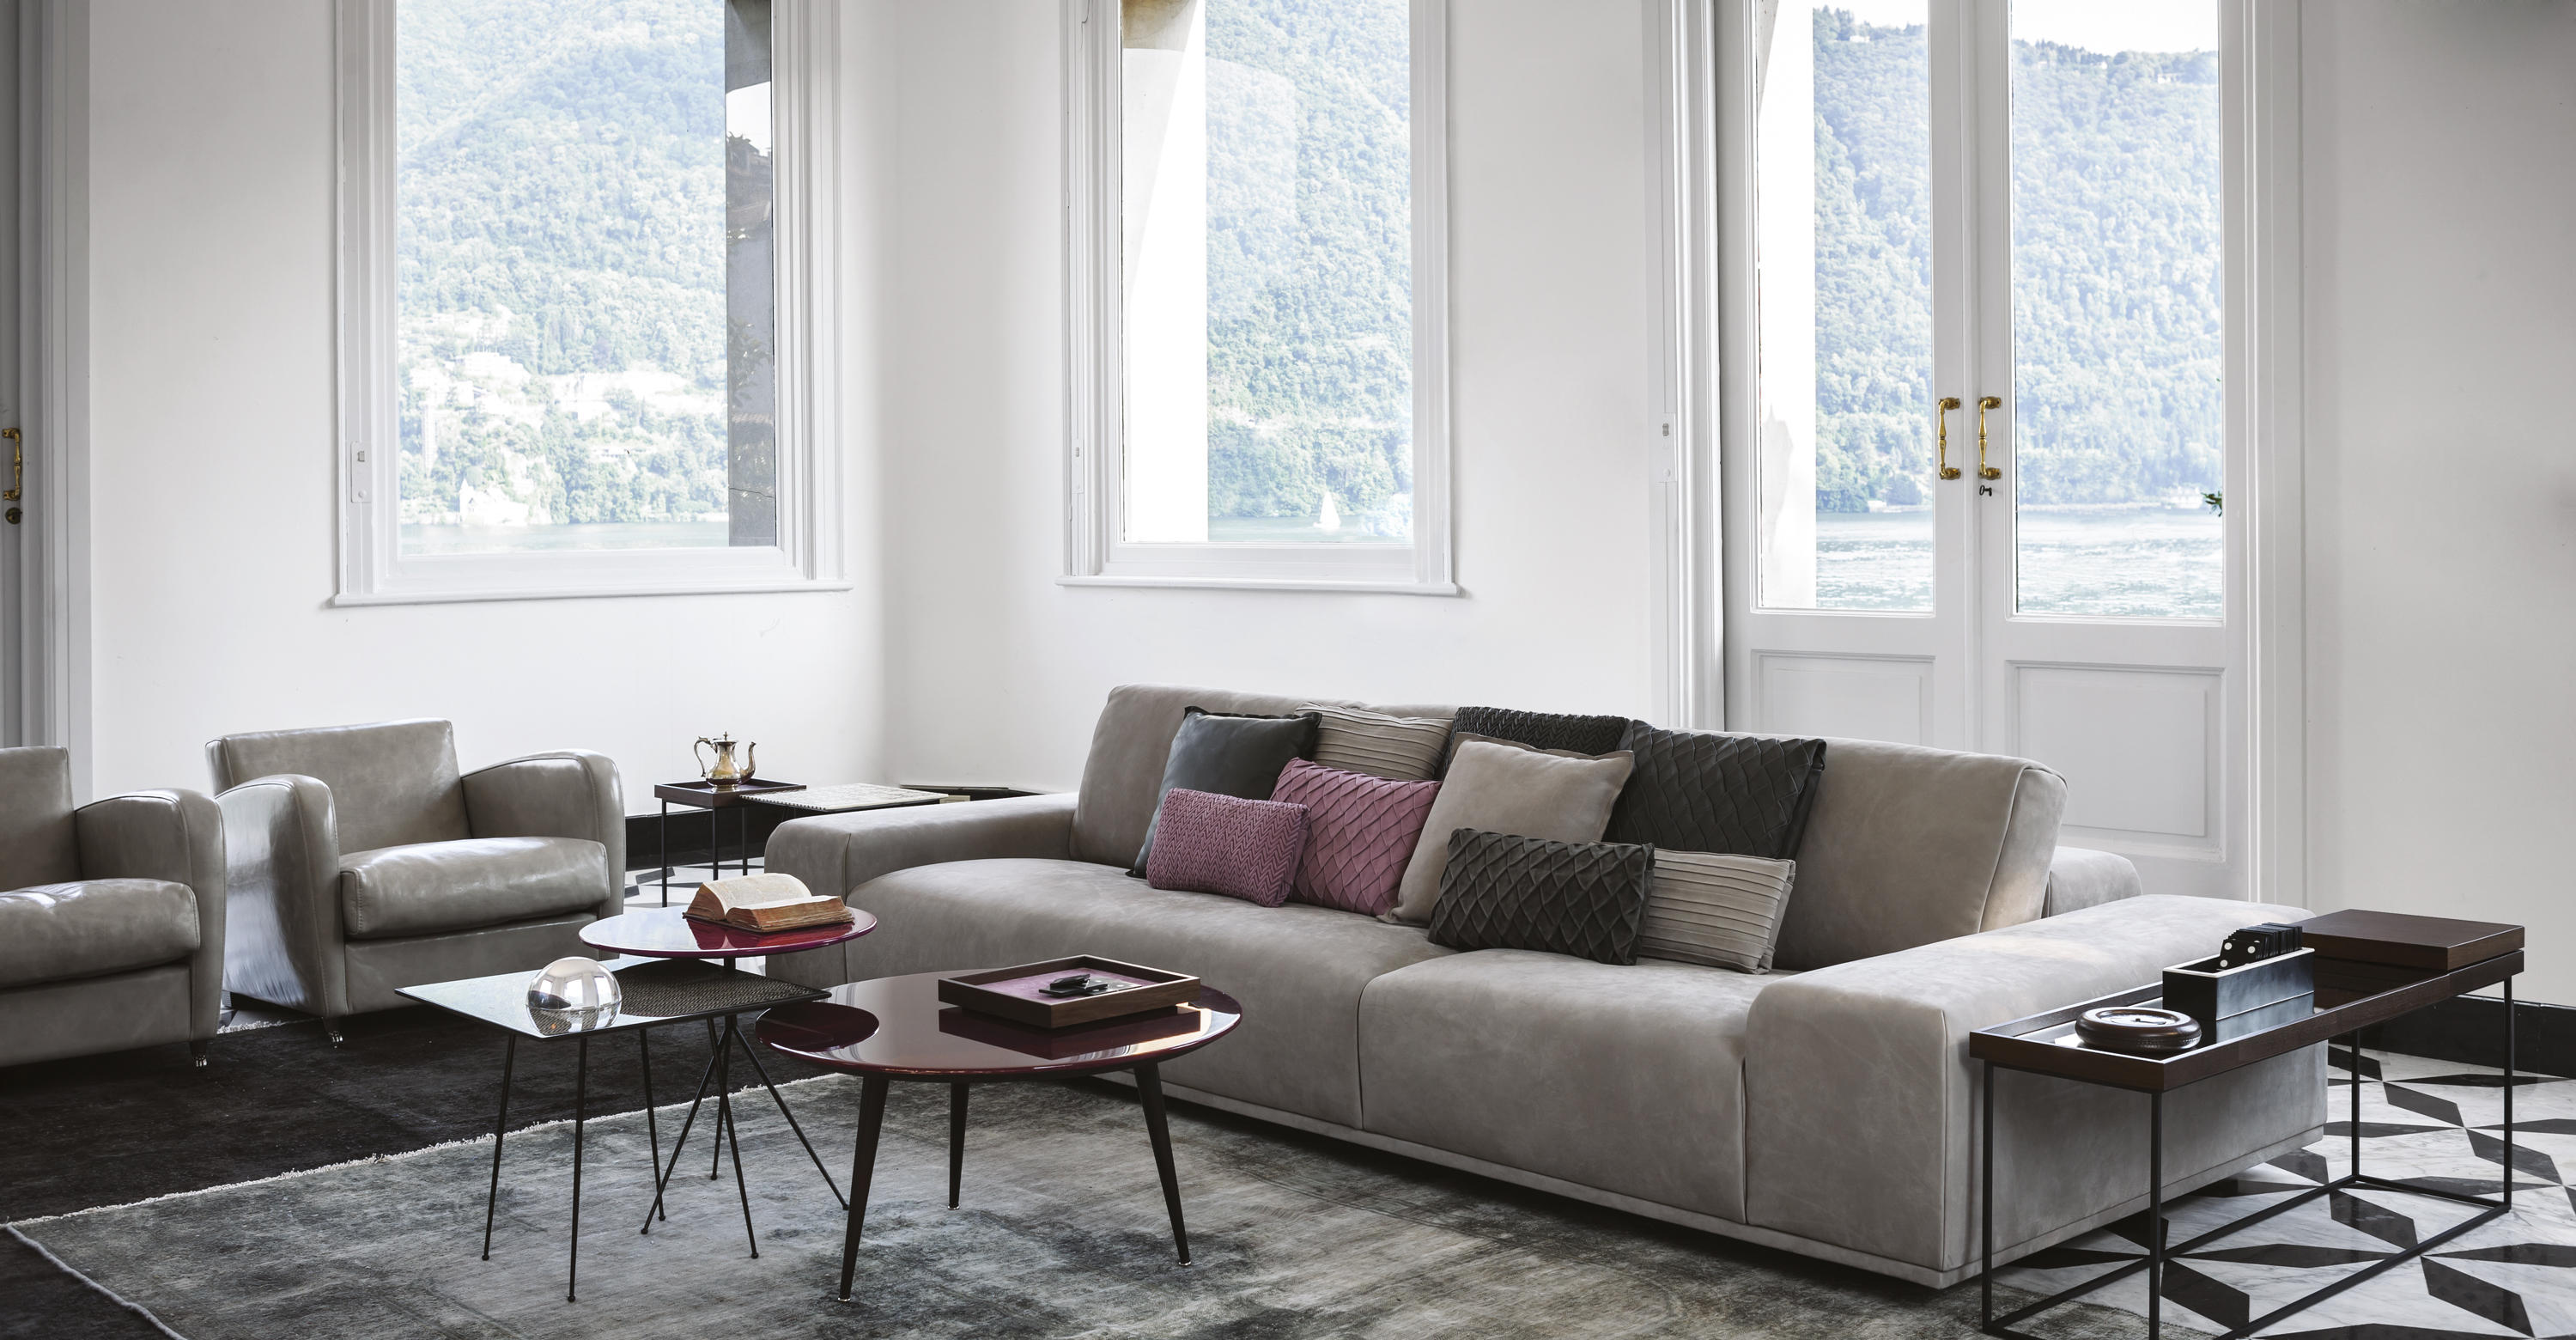 monsieur sofa sofas from baxter architonic ForBaxter Monsieur